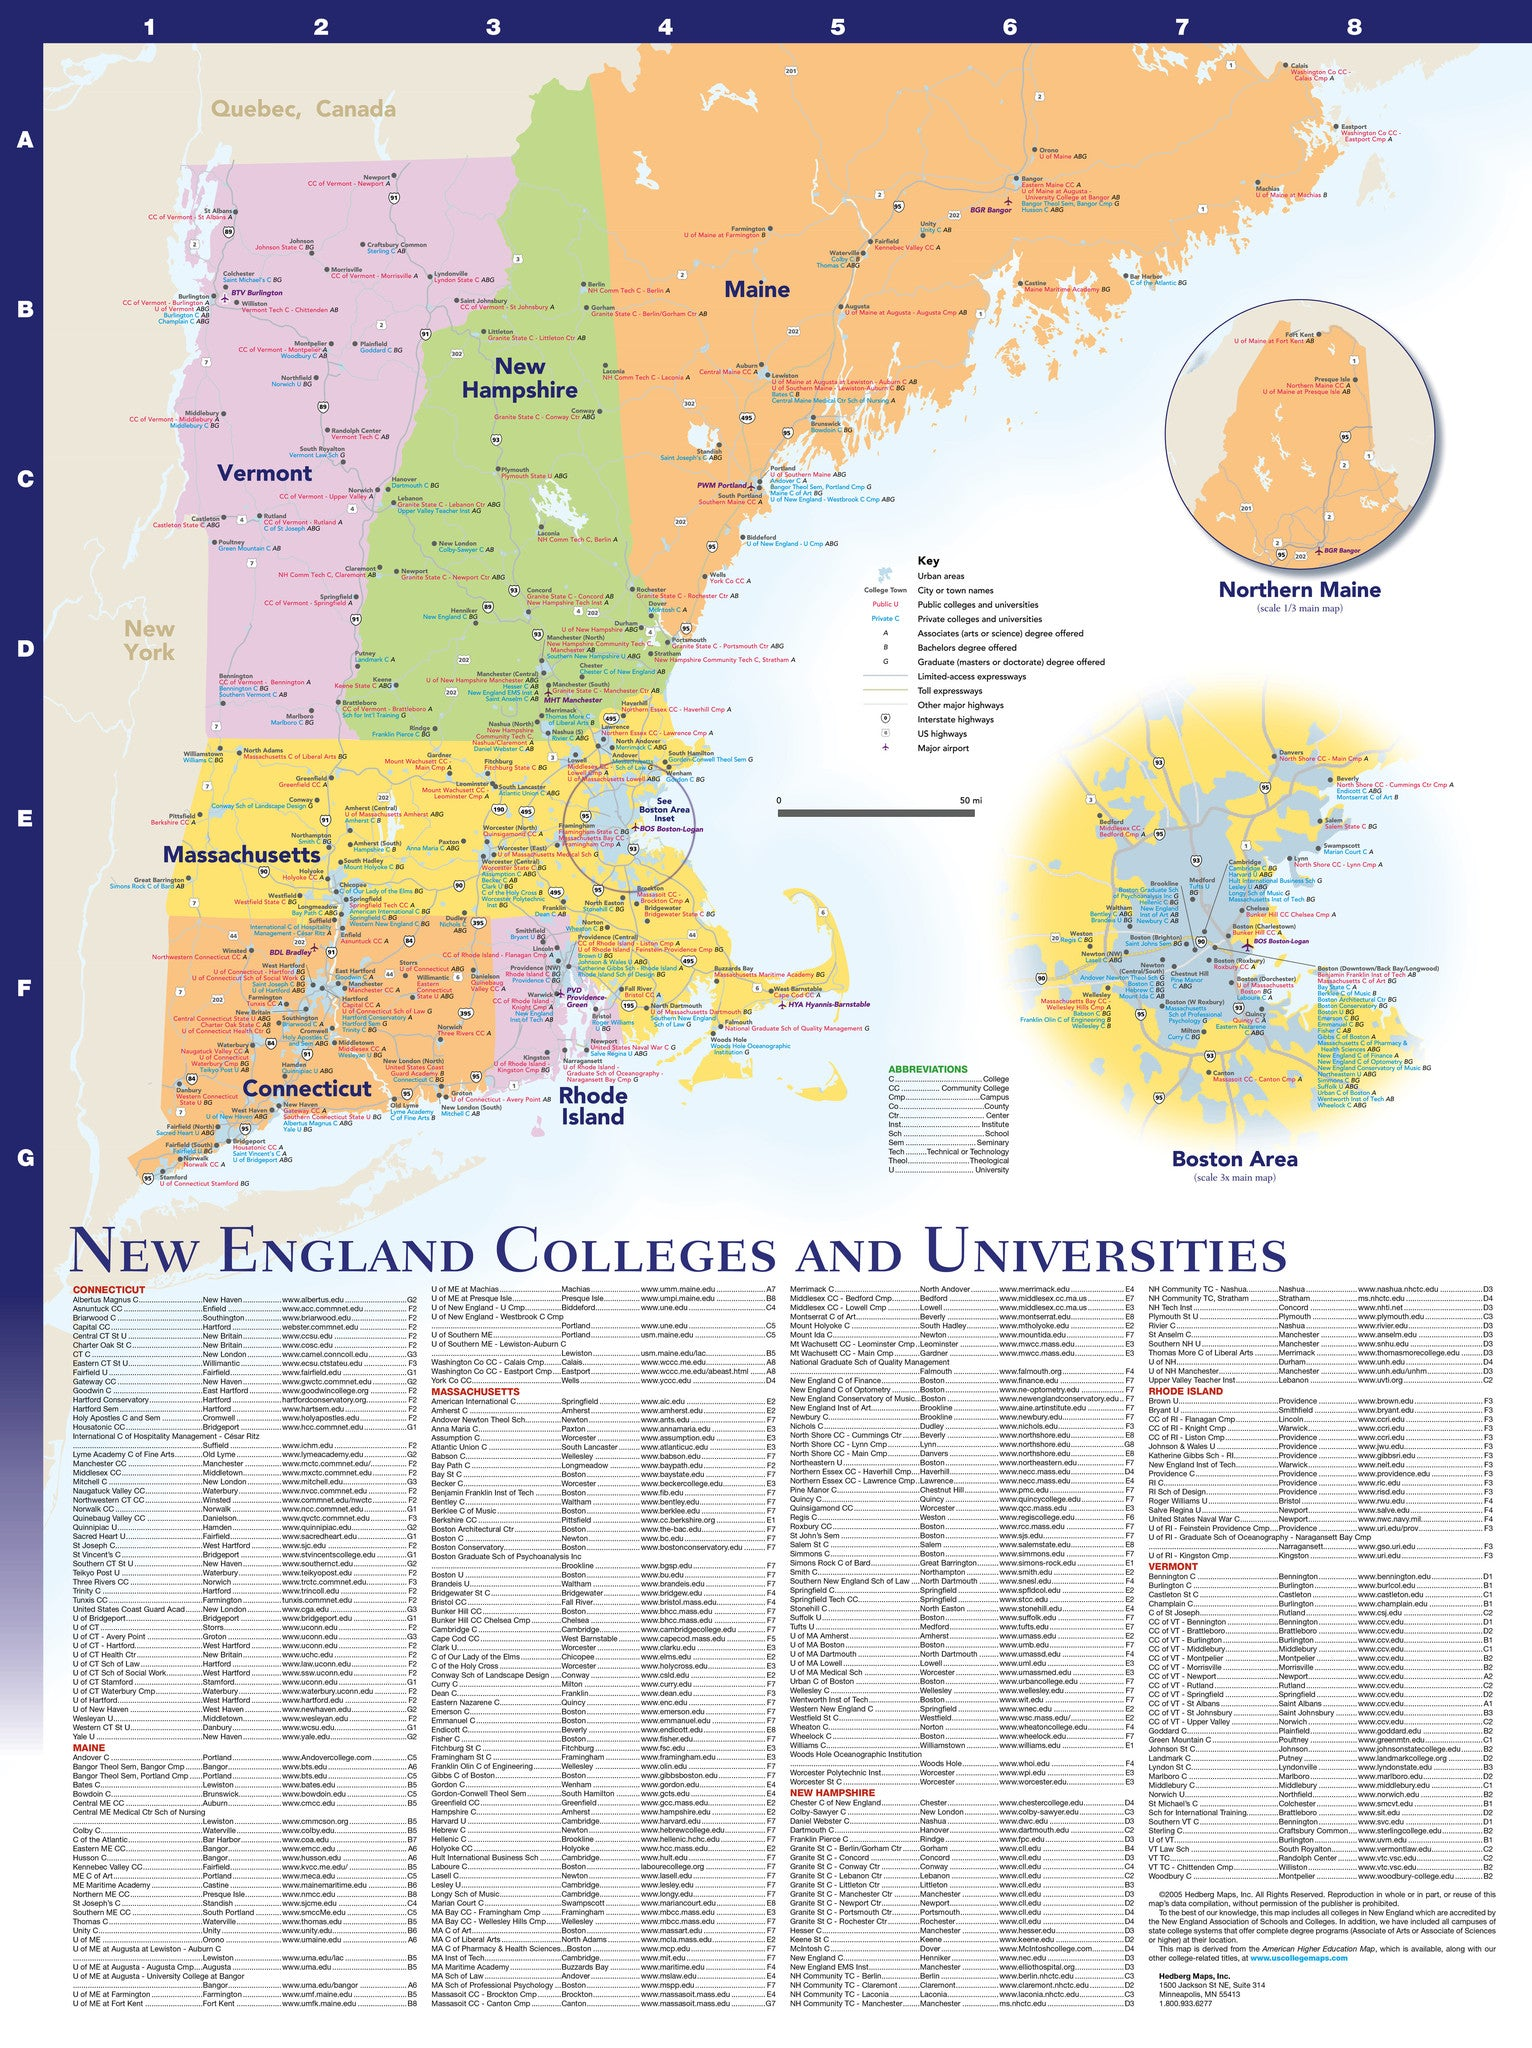 New England Colleges and Universities – Hedberg Maps